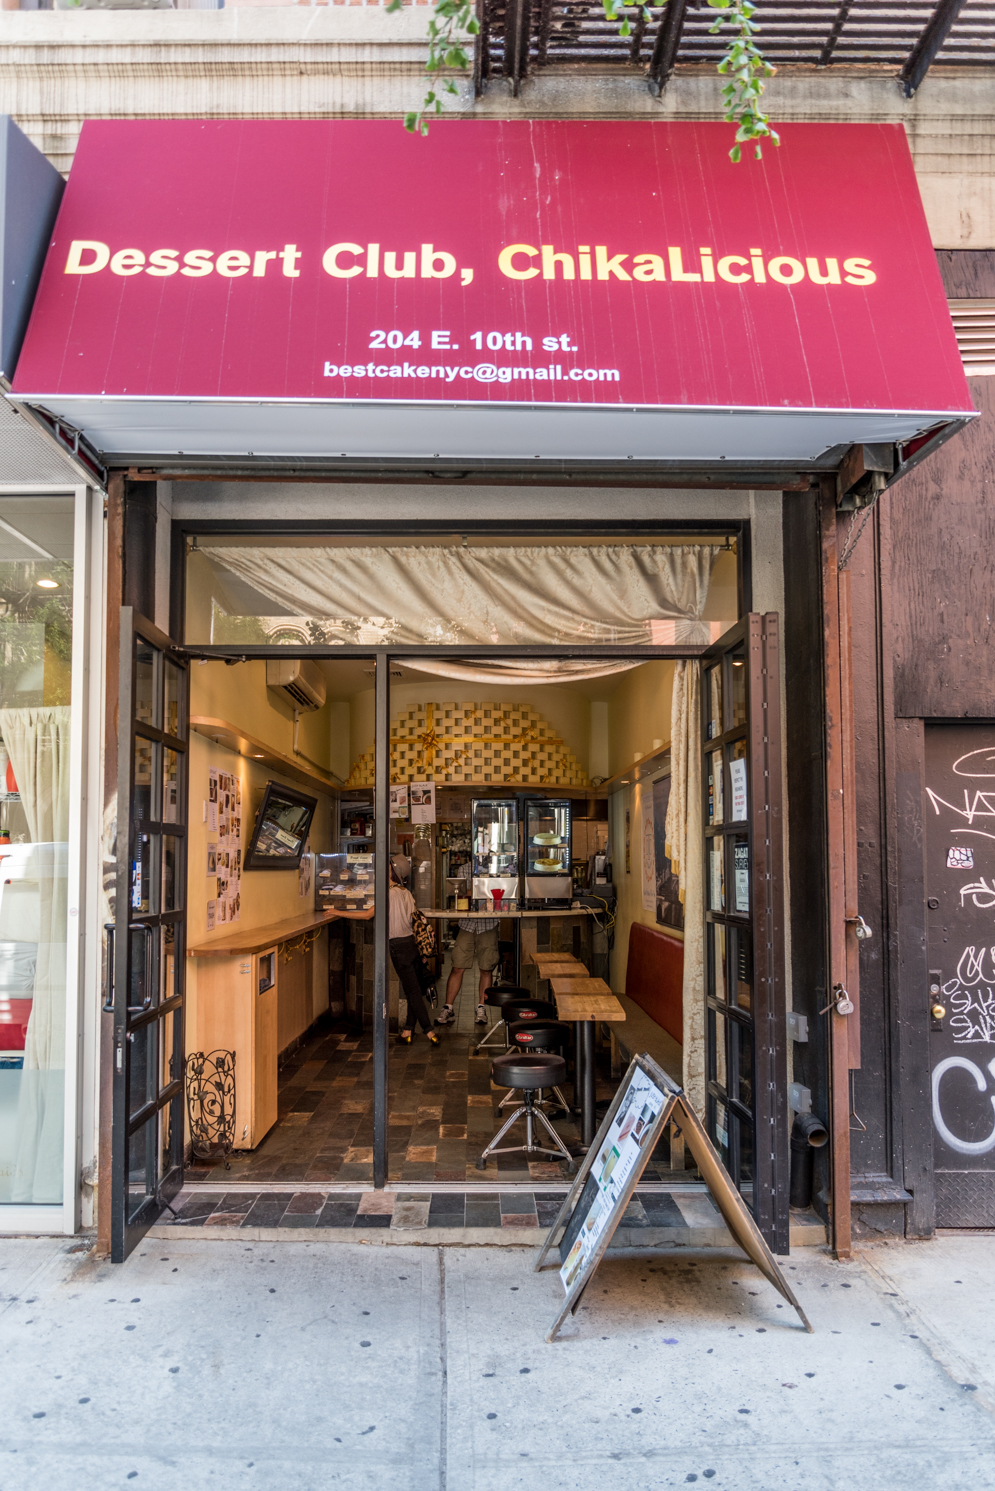 ROCK MAMA NYC LIFESTYLE BLOG - dessert club chikalicious